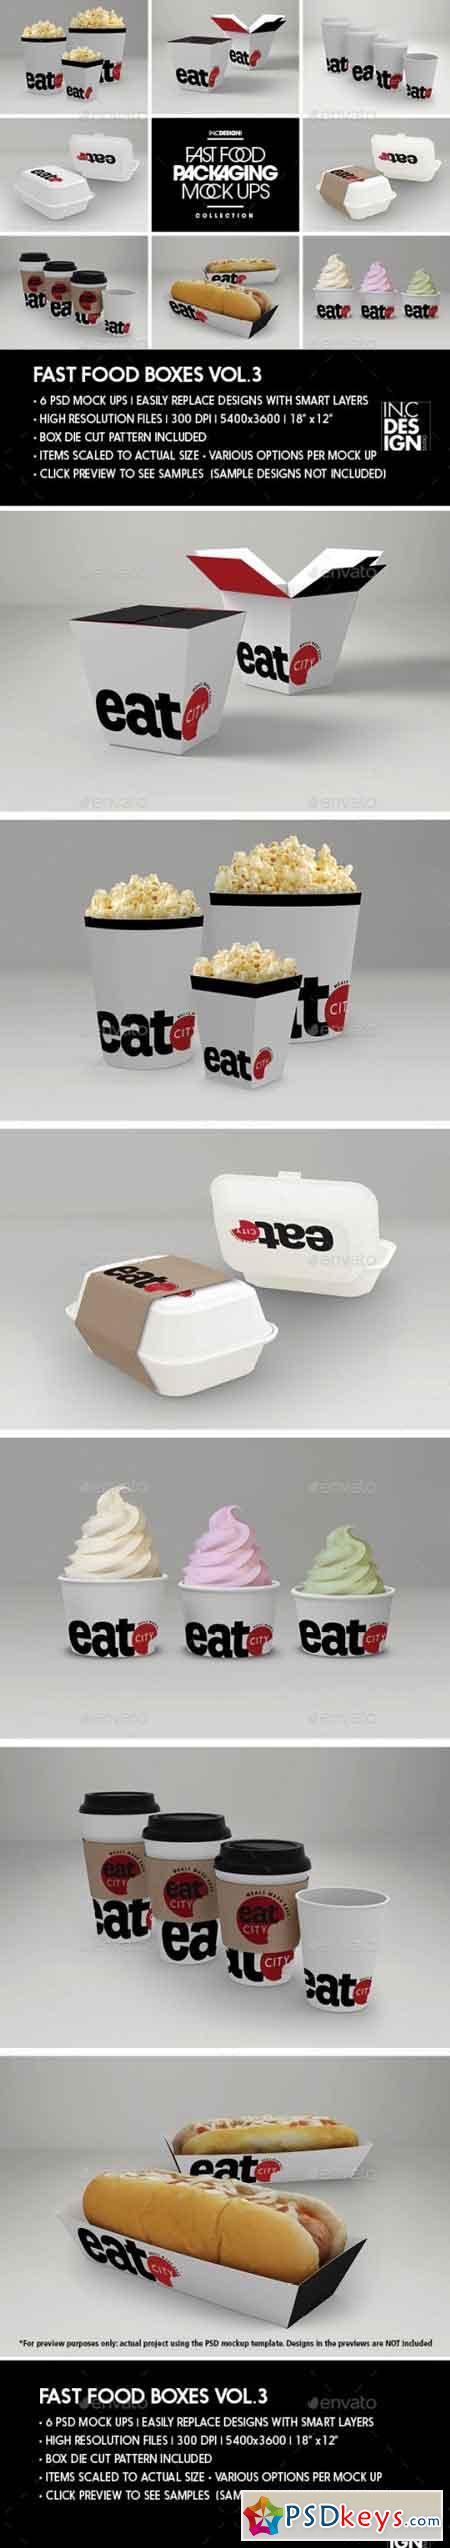 Fast Food Boxes Vol.3 Take Out Packaging Mock Ups 17838720